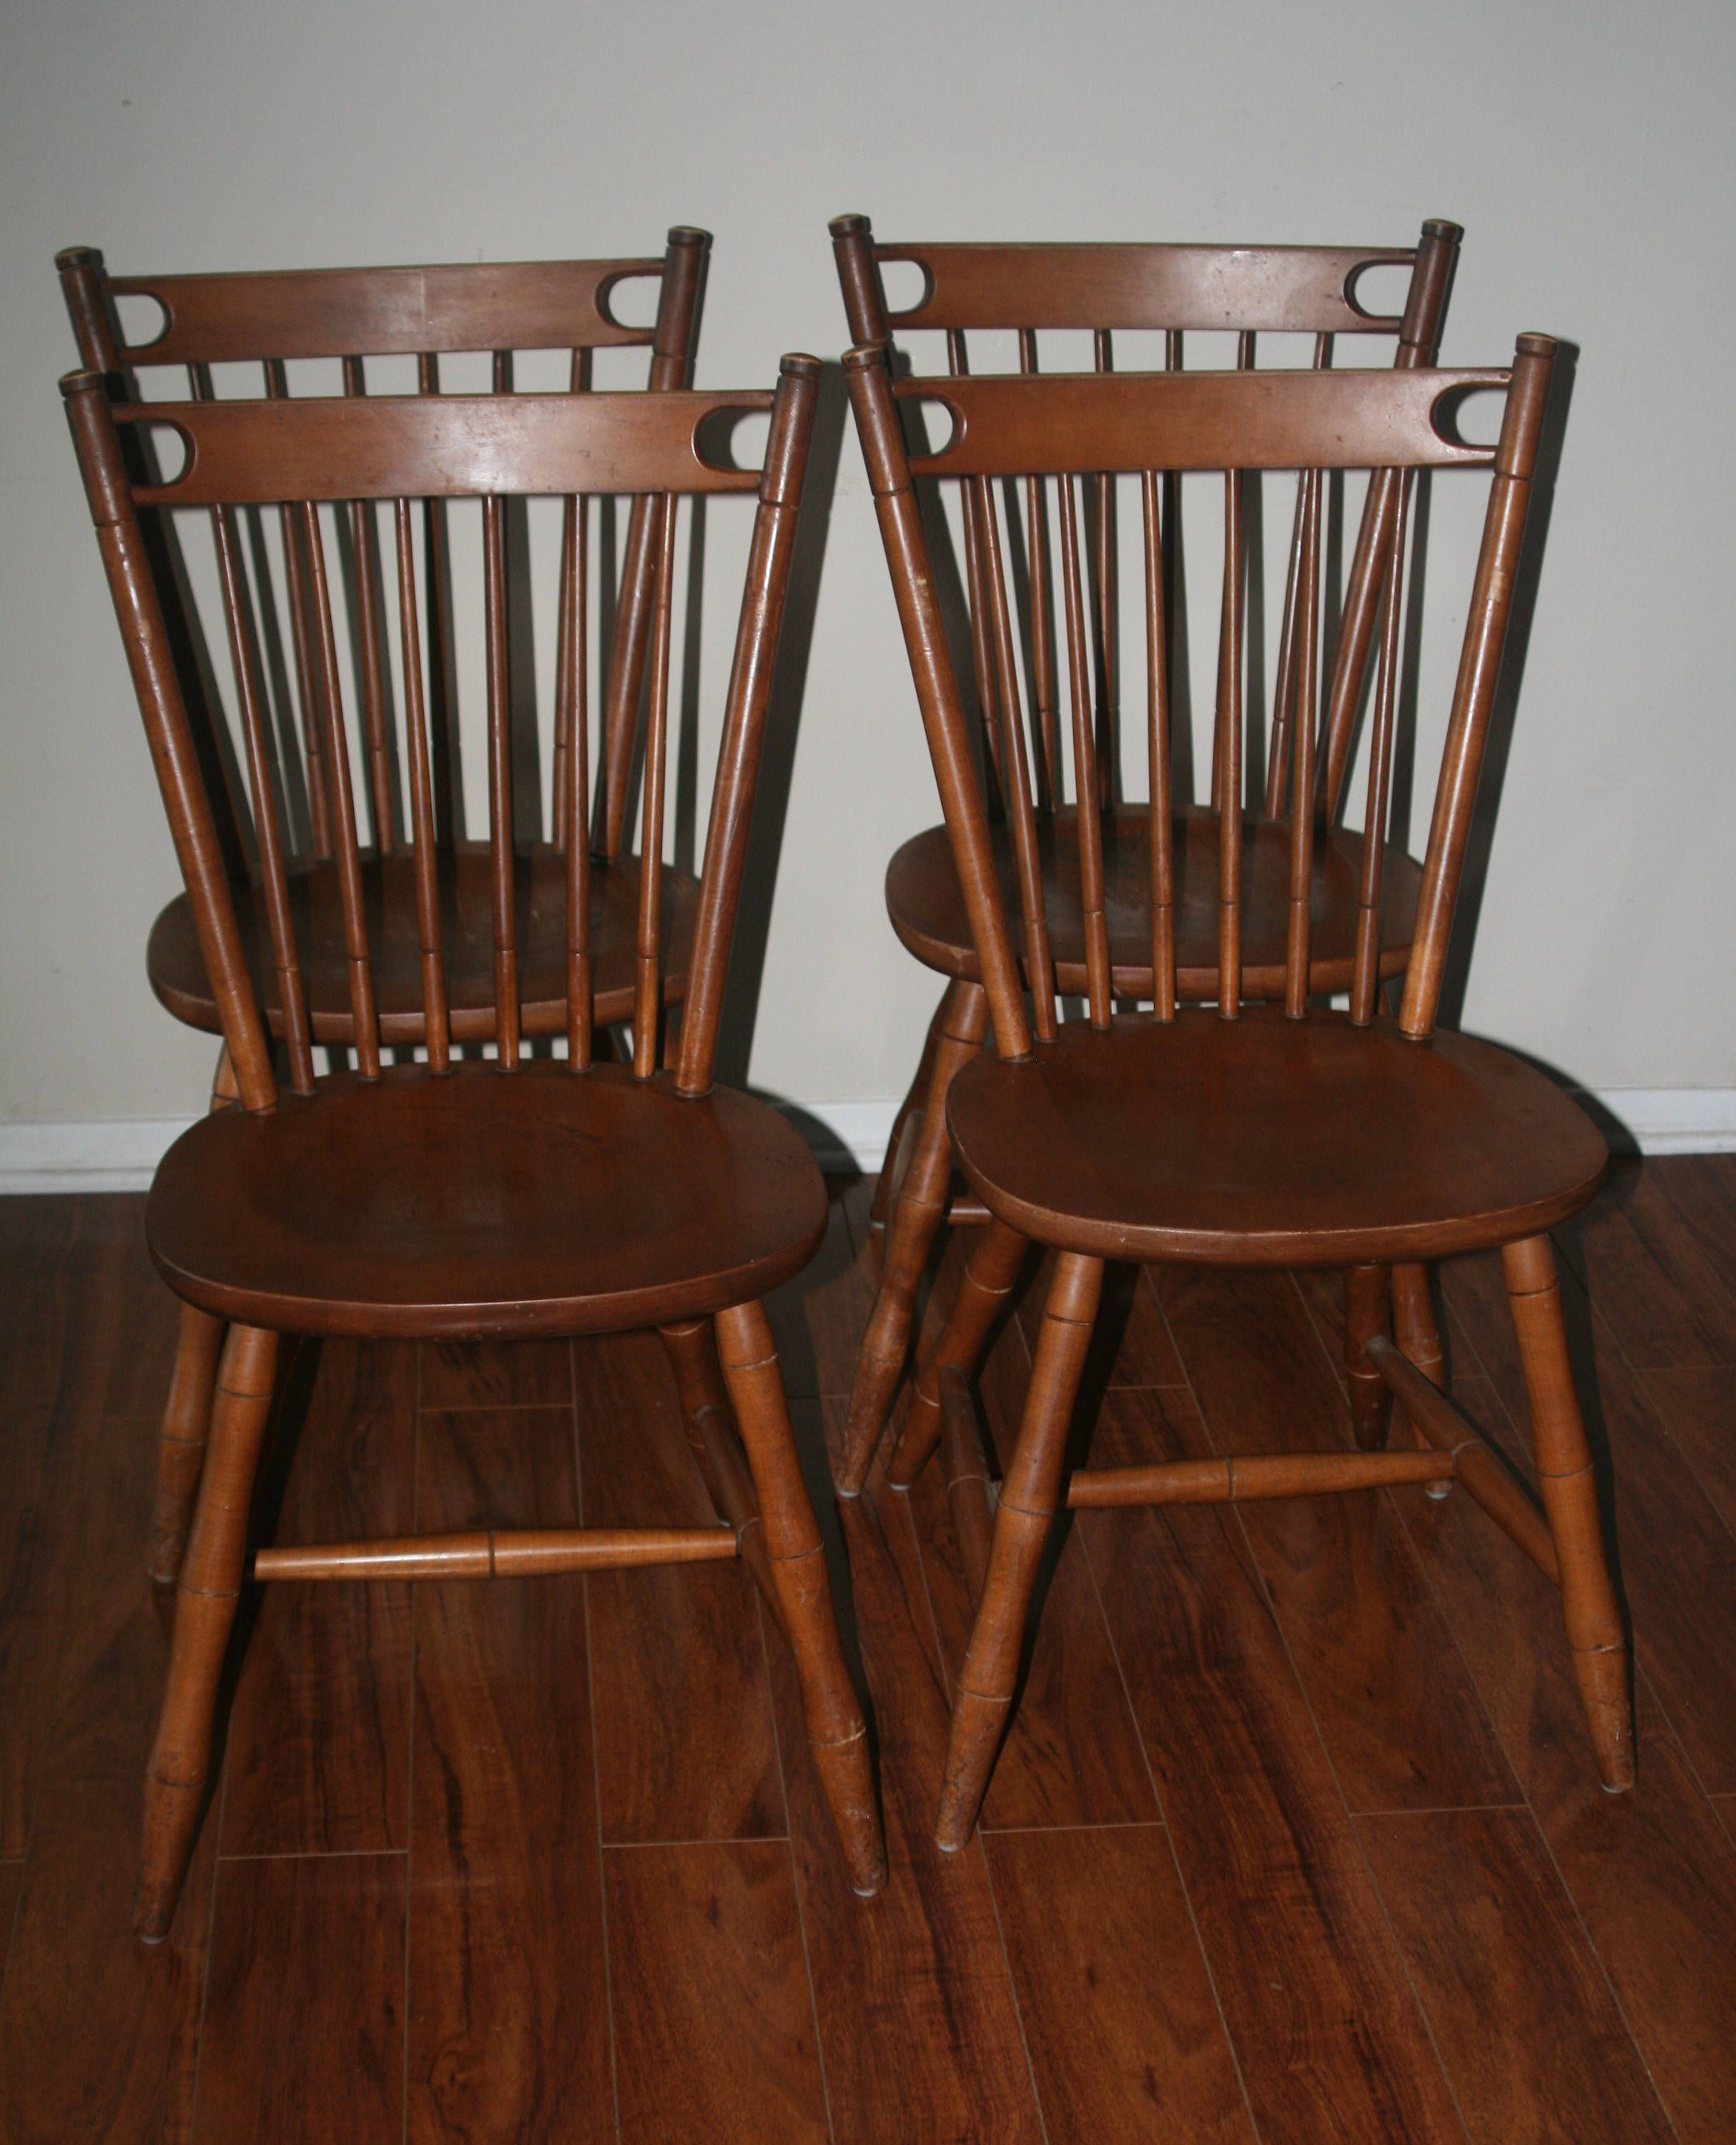 Vintage Mid Century Dining Rooms: 4 Mid Century Tell City Company Dining Chairs By